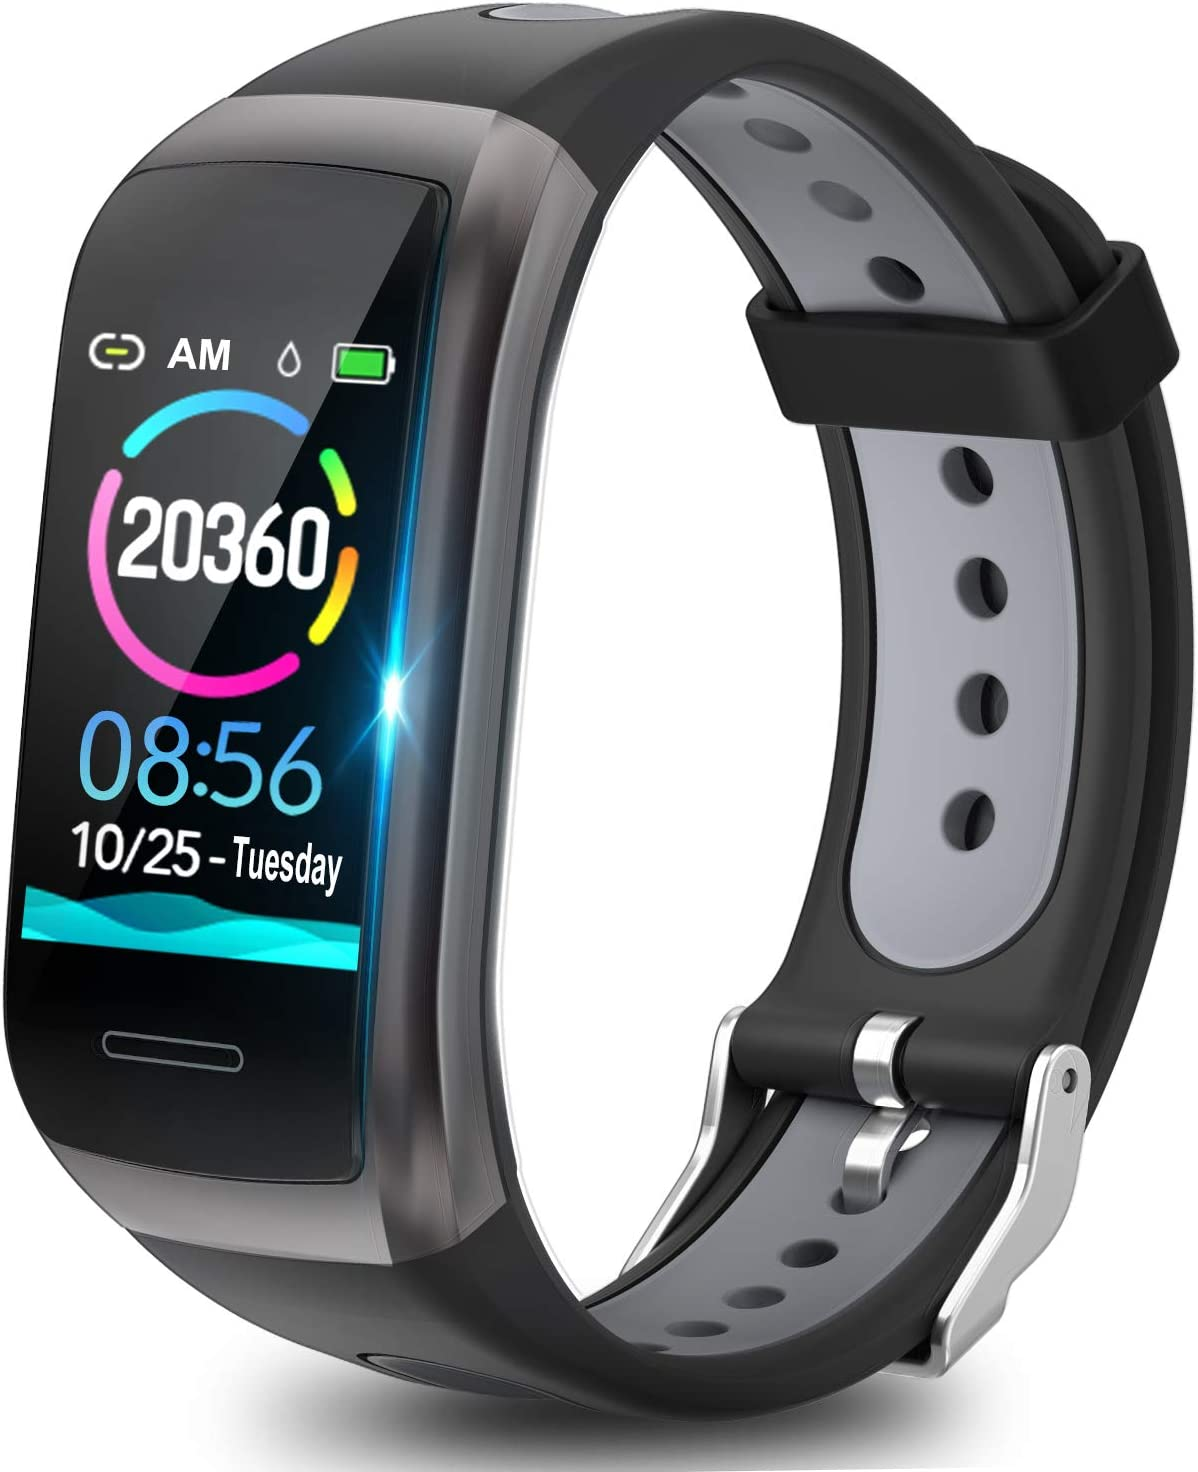 TagoBee TB14 Pulsera Actividad Fitness Trackers IP68 Waterproof Smart Band 1.14'' LCD Color Screen Sport Smart Brazalete con Monitor de frecuencia cardíaca Compatible con Android e iOS